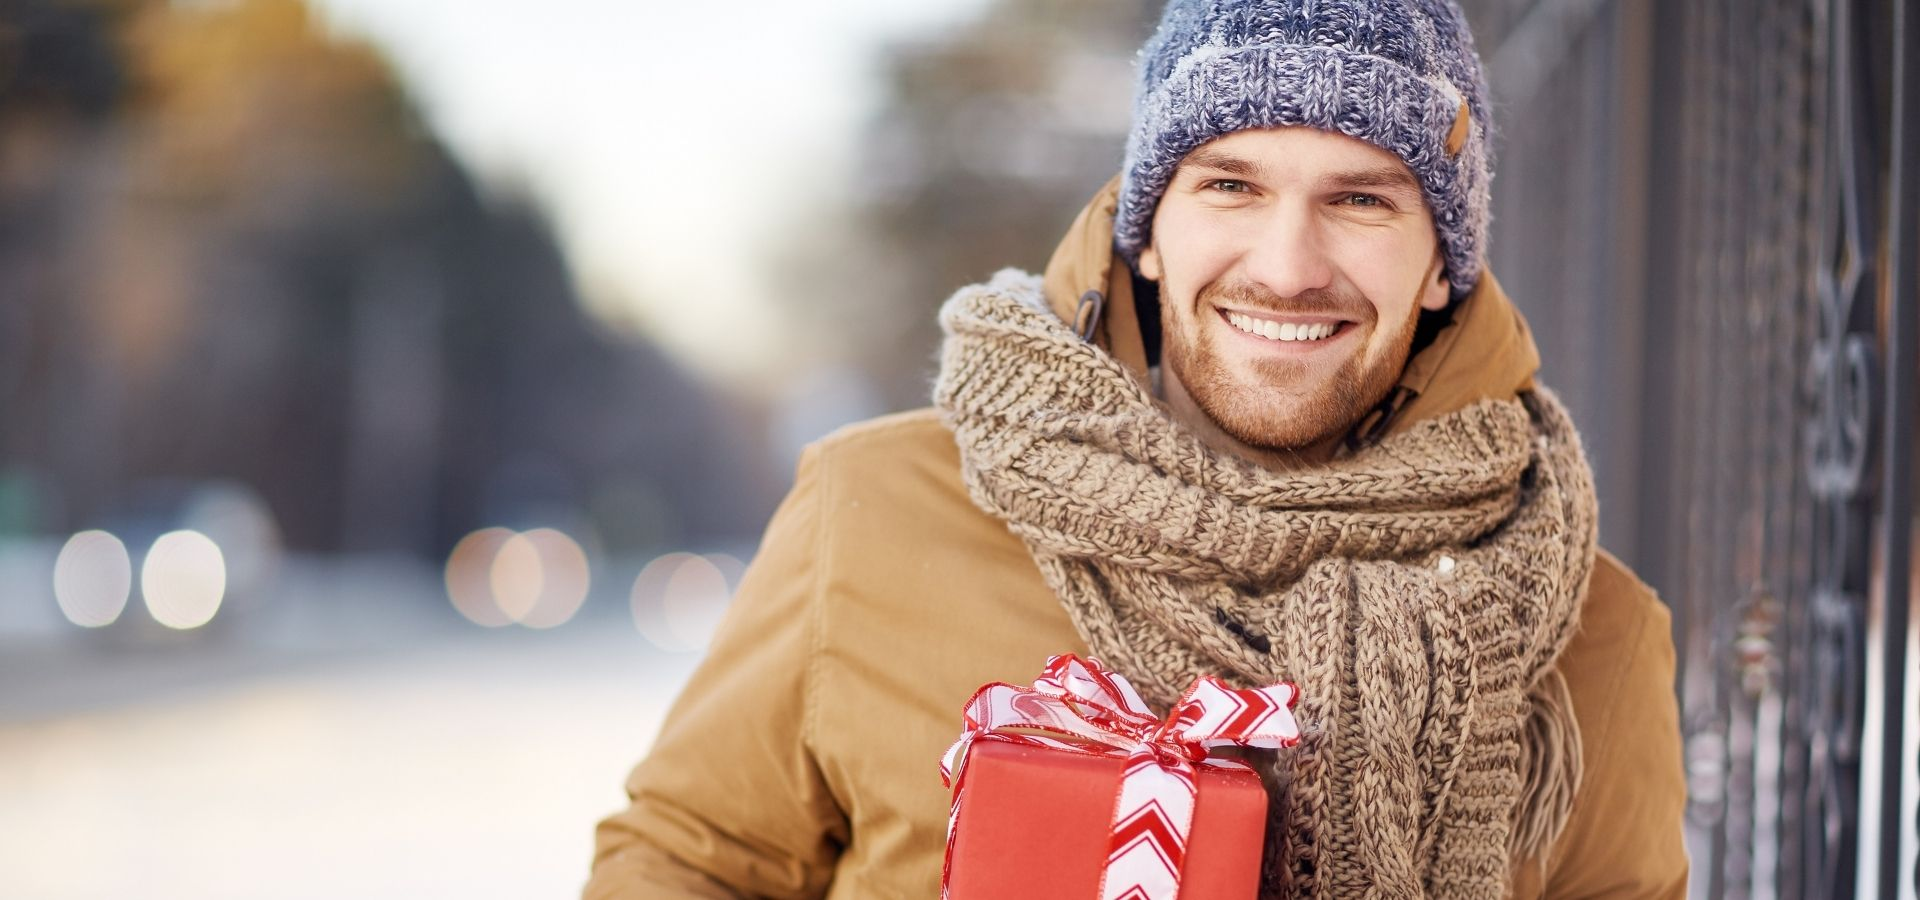 Gift Guide for Him_Boy with winter clothes and present